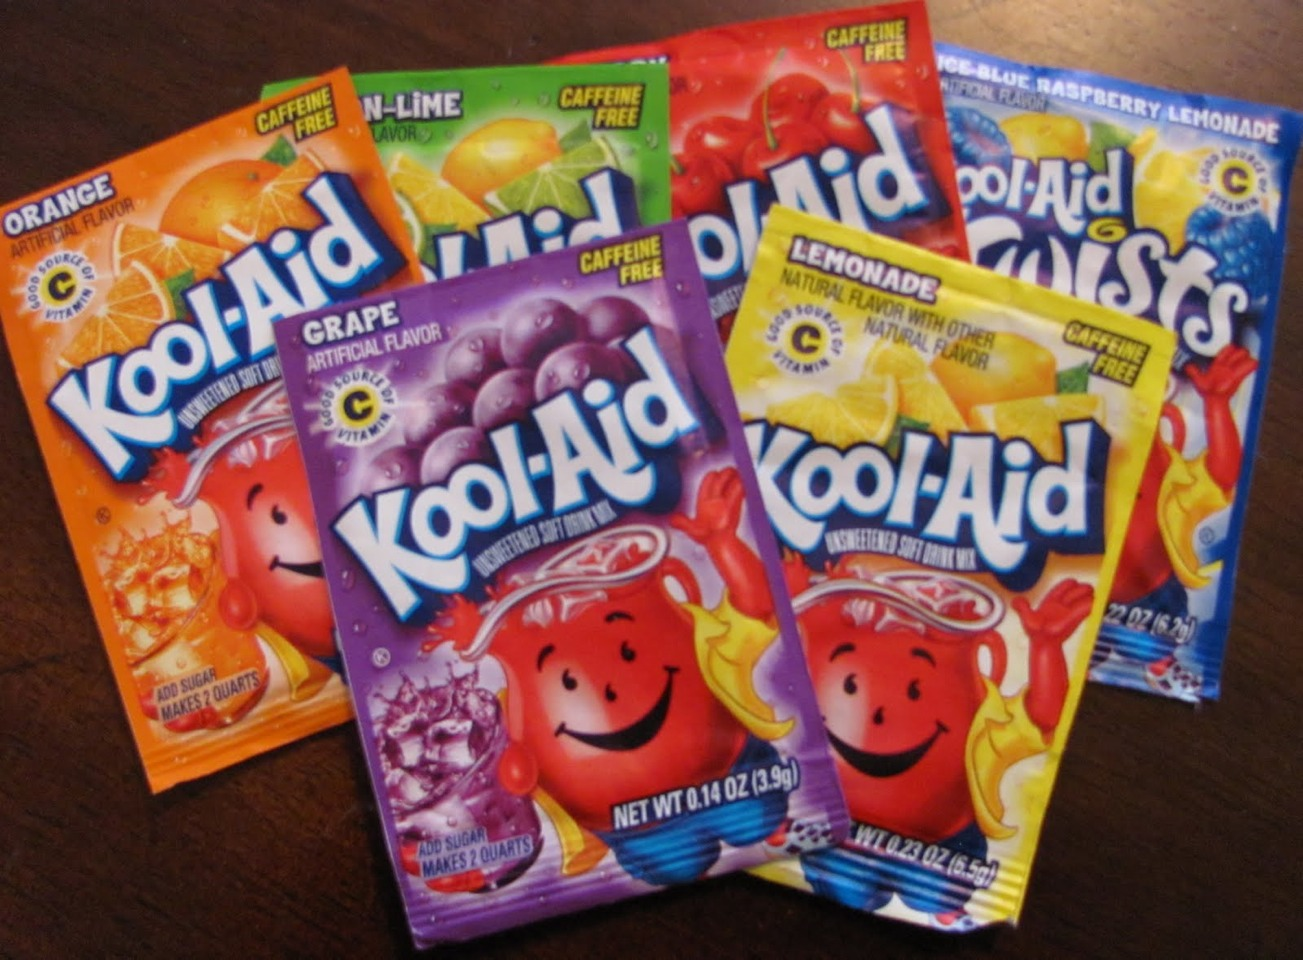 Next open 1 package of Kool Aid and add it to your condensed milk. Mix on high for 10-15 seconds until blended thoroughly.